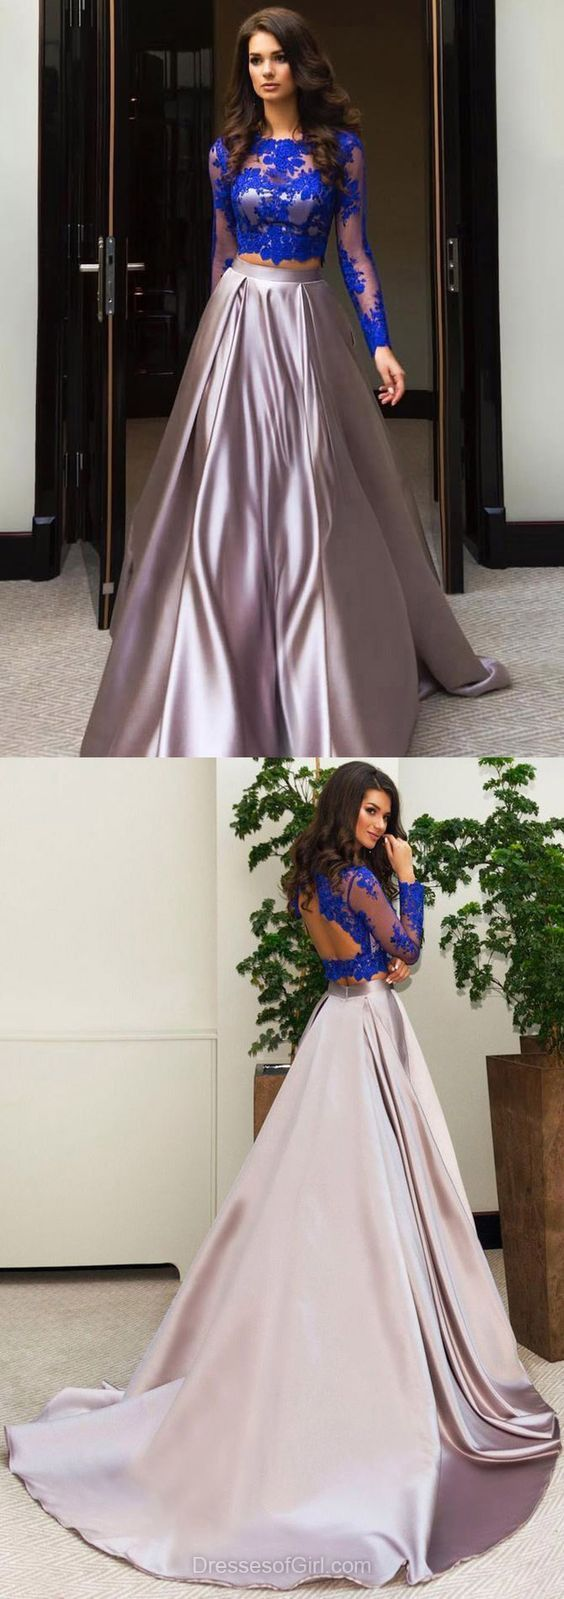 Long sleeves lace satin prom dress royal blue formal evening gown